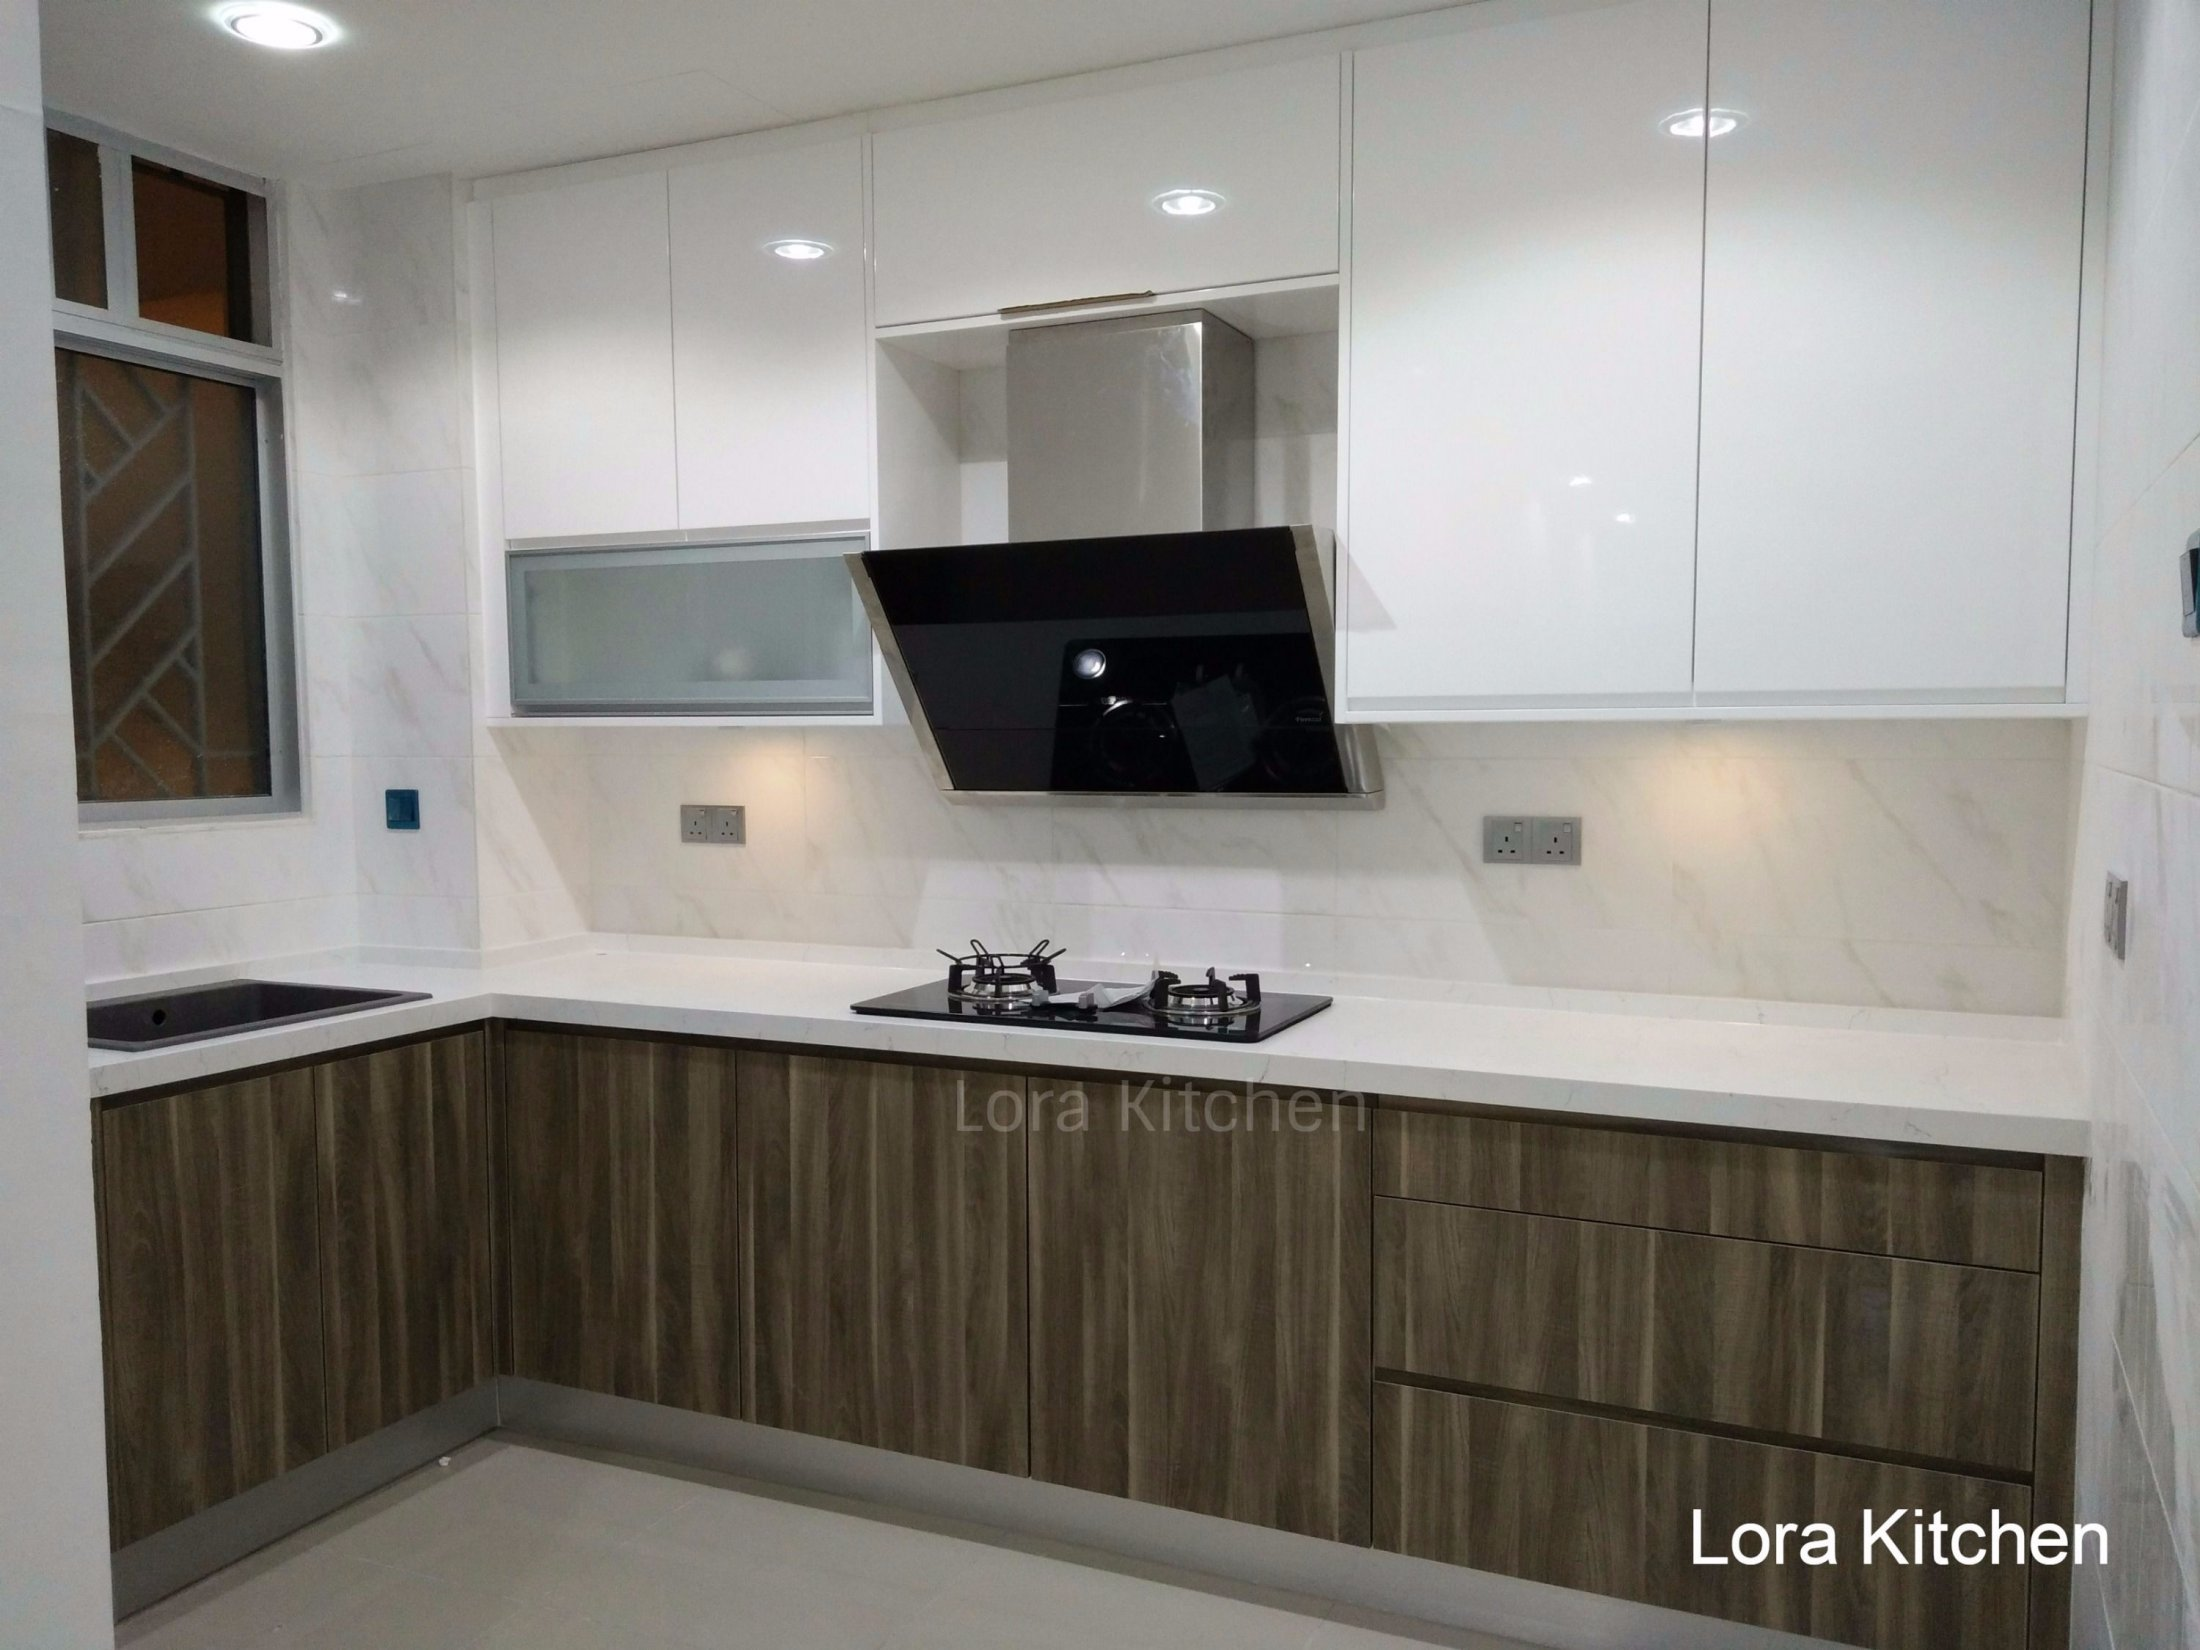 Stunning modern kitchen cabinet design in malaysia lora kitchen for Kitchen cabinet layout designer